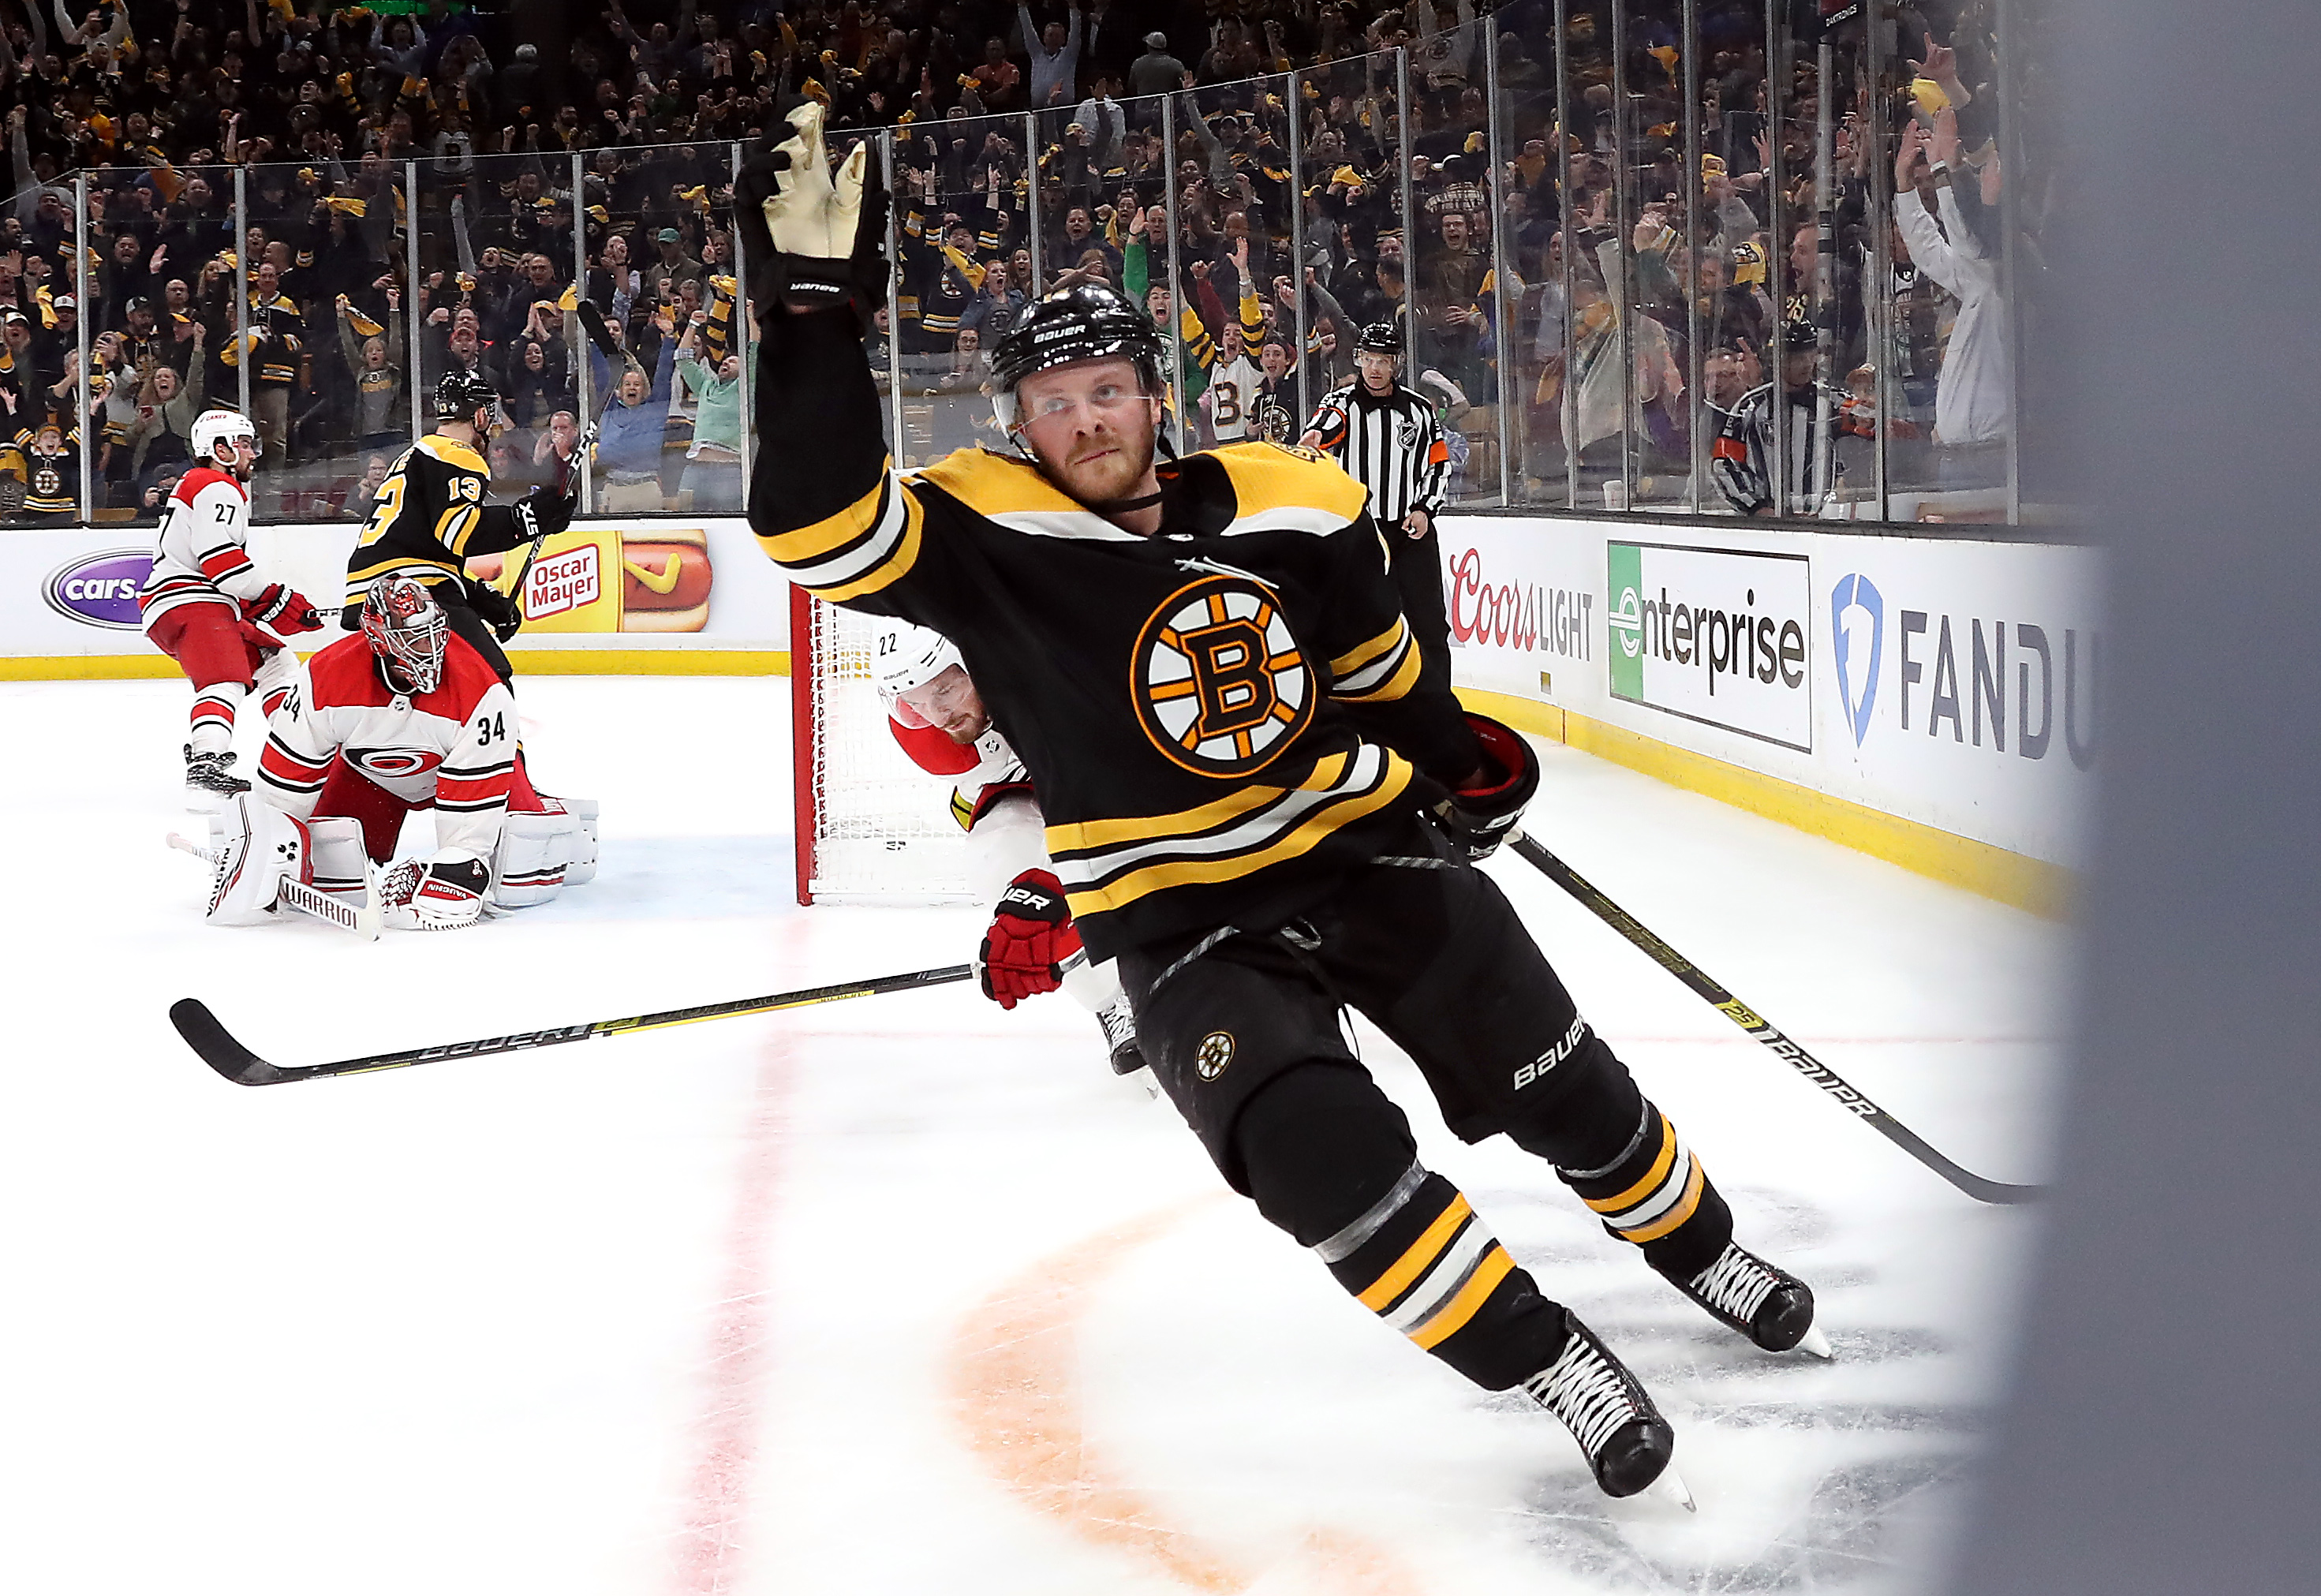 Chris Wagner nearly made it back in Bruins lineup after remarkable